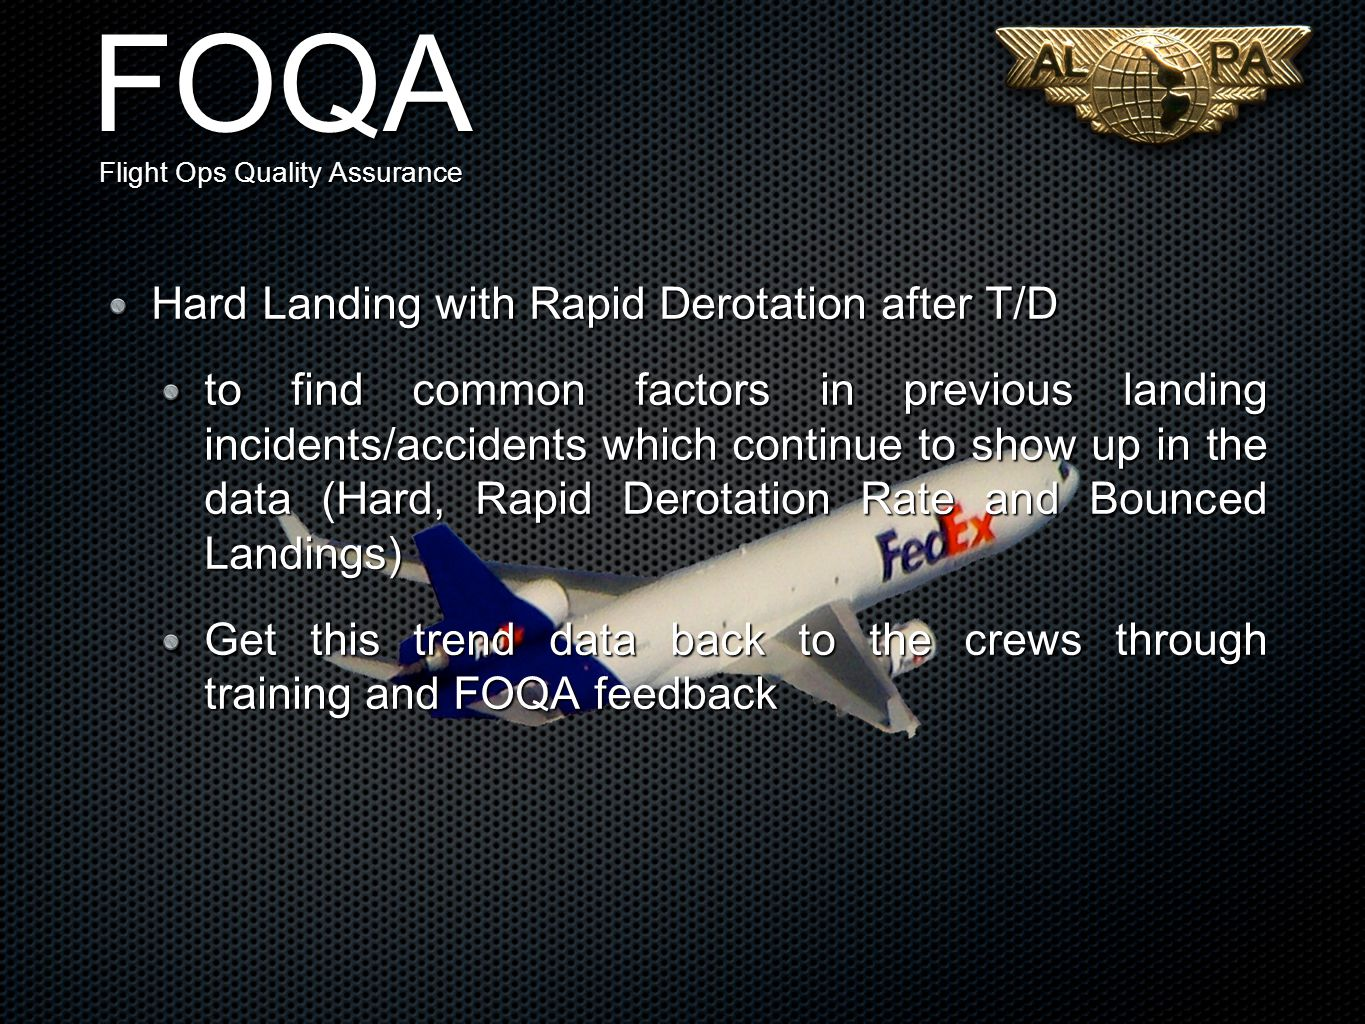 FOQA Flight Ops Quality Assurance Hard Landing with Rapid Derotation after T/D to find common factors in previous landing incidents/accidents which continue to show up in the data (Hard, Rapid Derotation Rate and Bounced Landings) Get this trend data back to the crews through training and FOQA feedback